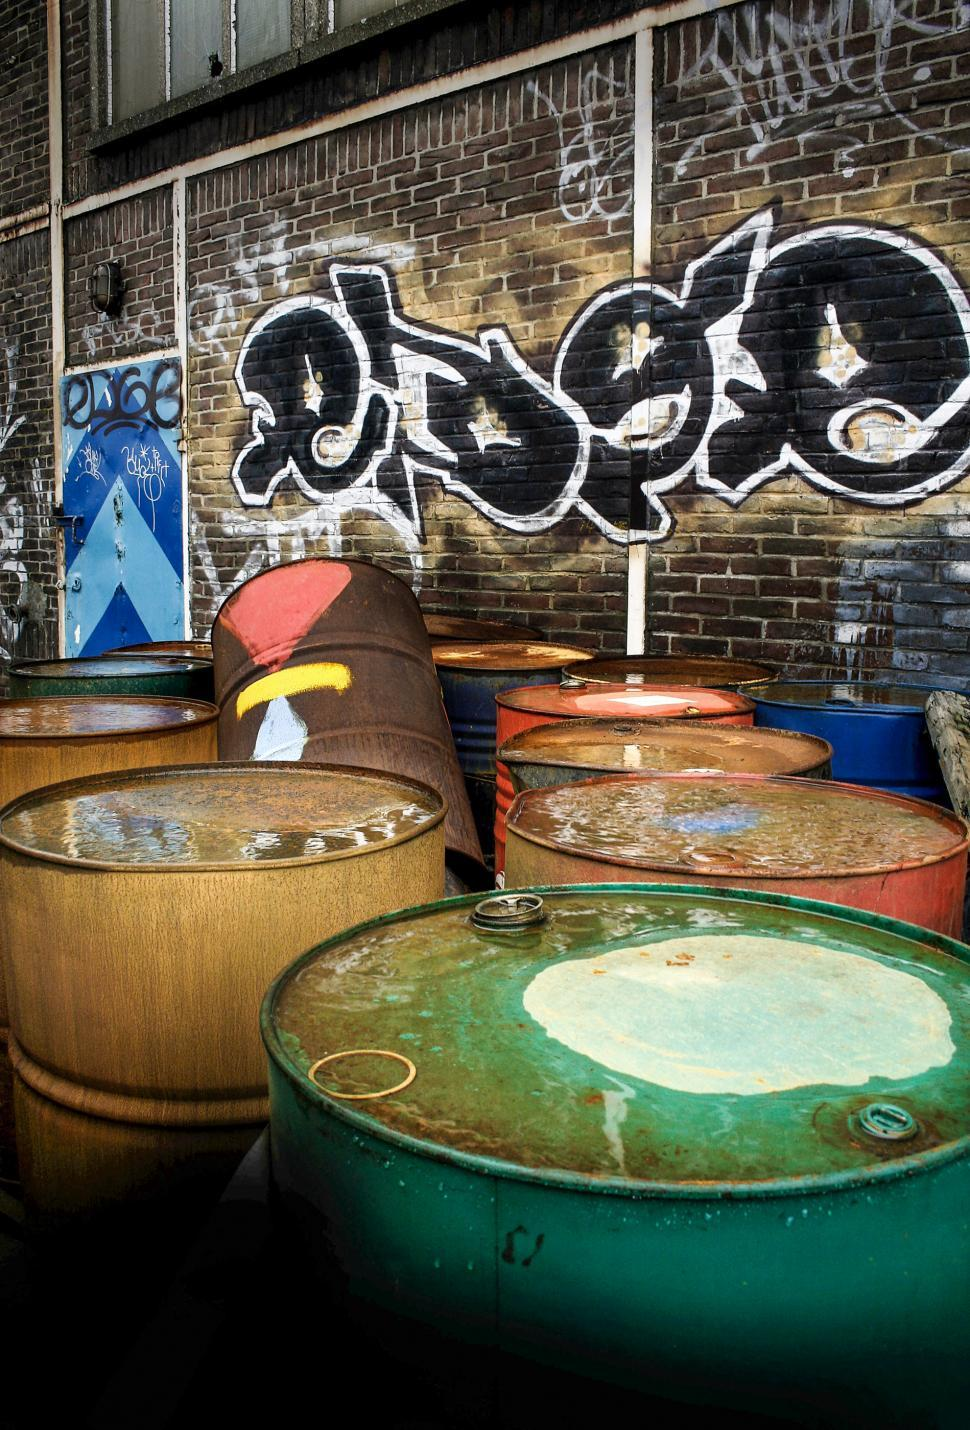 Download Free Stock HD Photo of Urban oil cans drums Online